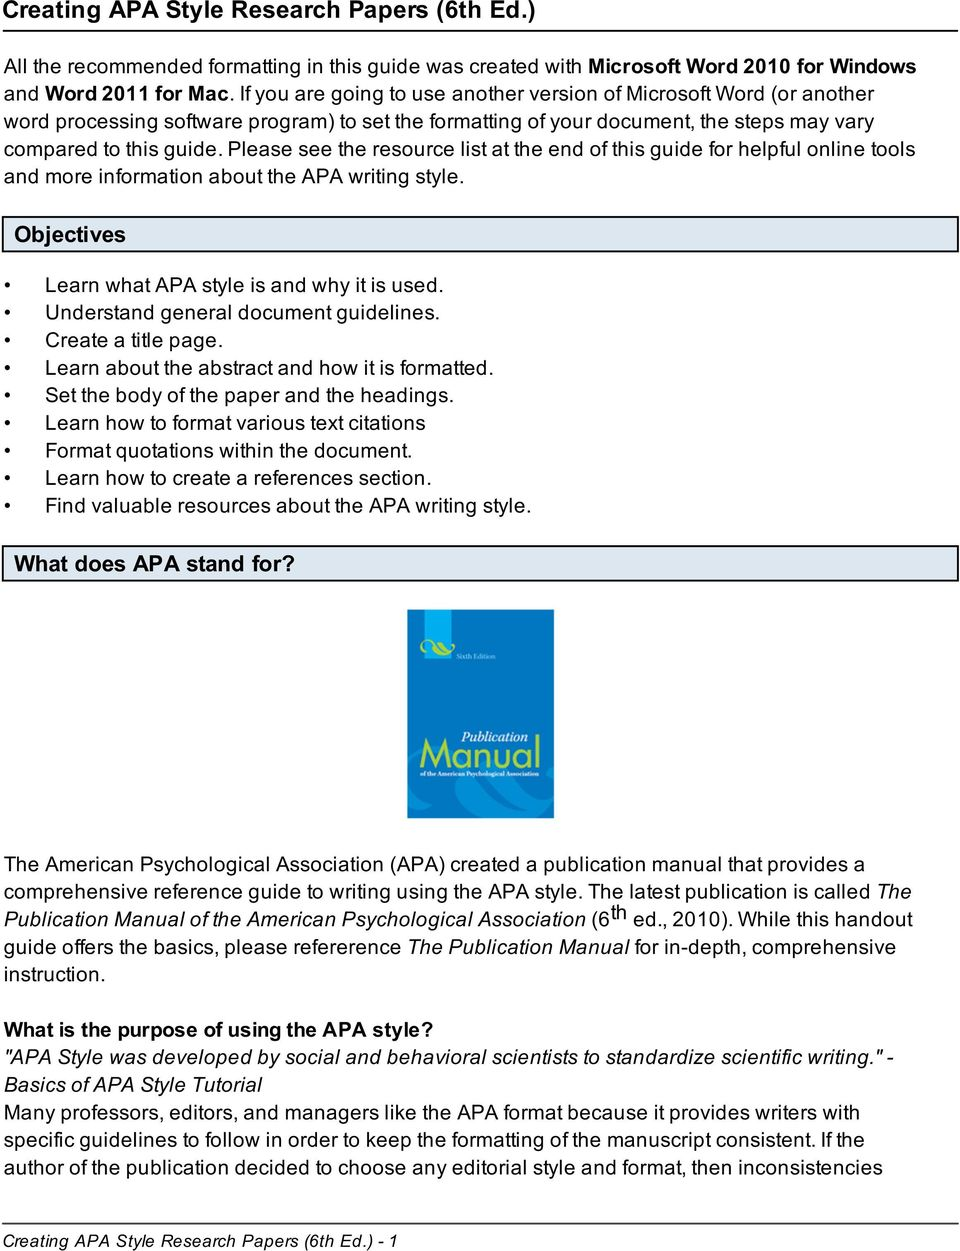 creating apa style research papers 6th ed pdf